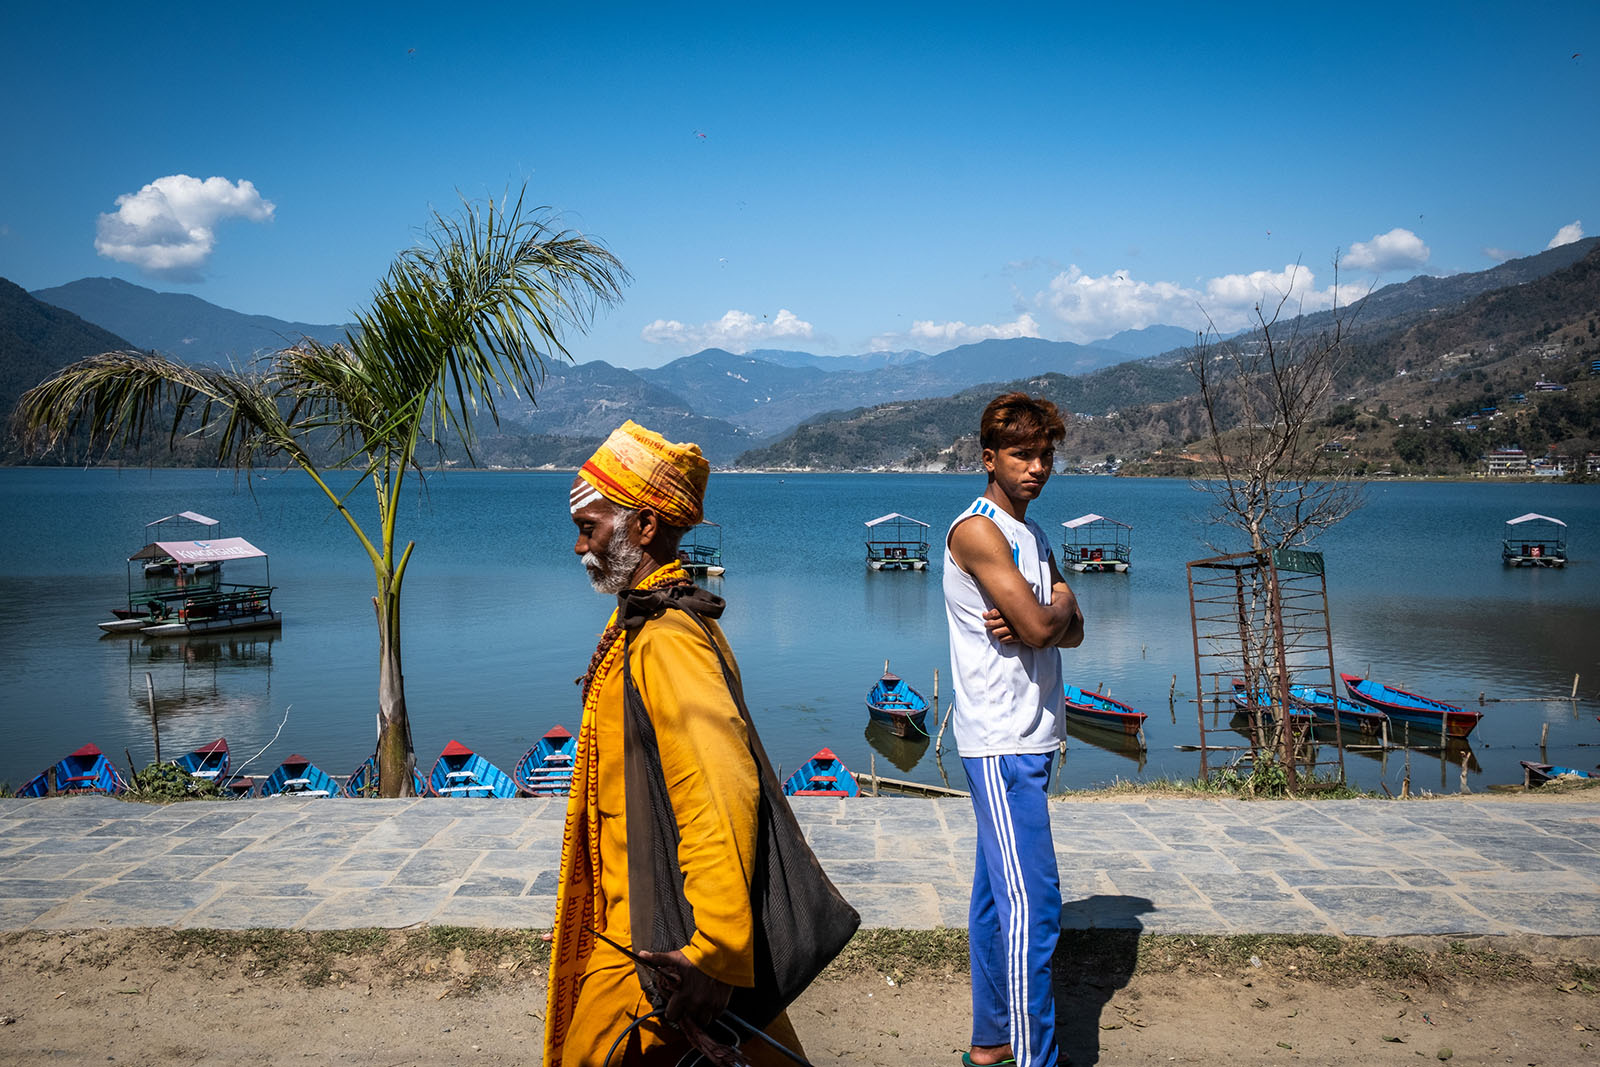 sadhu and young boy at lakeside Pokhara, Nepal